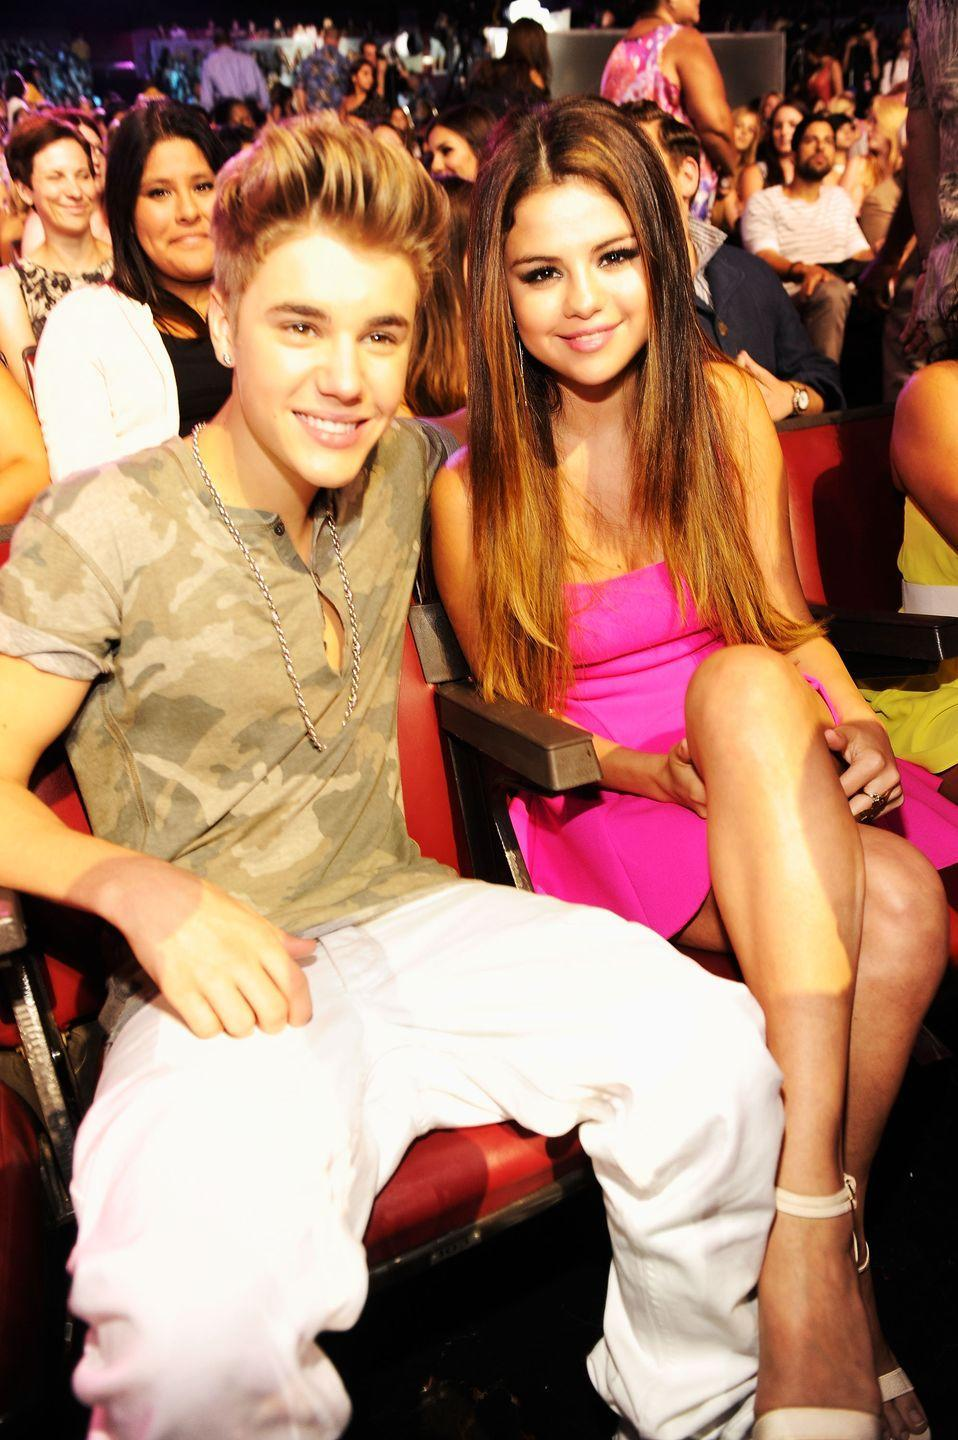 """<p>When this popular duo was together from 2011-2014, it was reported that<a href=""""https://www.ranker.com/list/celebrities-who-stayed-with-cheating-spouses/evan-lambert"""" rel=""""nofollow noopener"""" target=""""_blank"""" data-ylk=""""slk:Justin had cheated on Selena"""" class=""""link rapid-noclick-resp""""> Justin had cheated on Selena</a> <em>all the damn time</em>—but she stuck with him anyway for several years. While they didn't last, she certainly had gotten used to hearing """"I'm sorry,"""" and letting things slide. Justin is now married to childhood pal Hailey Baldwin.</p>"""